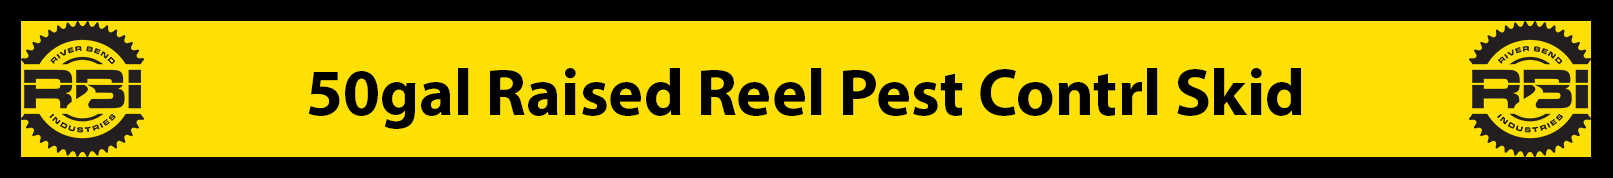 pest-control-raised-reel-icon.png